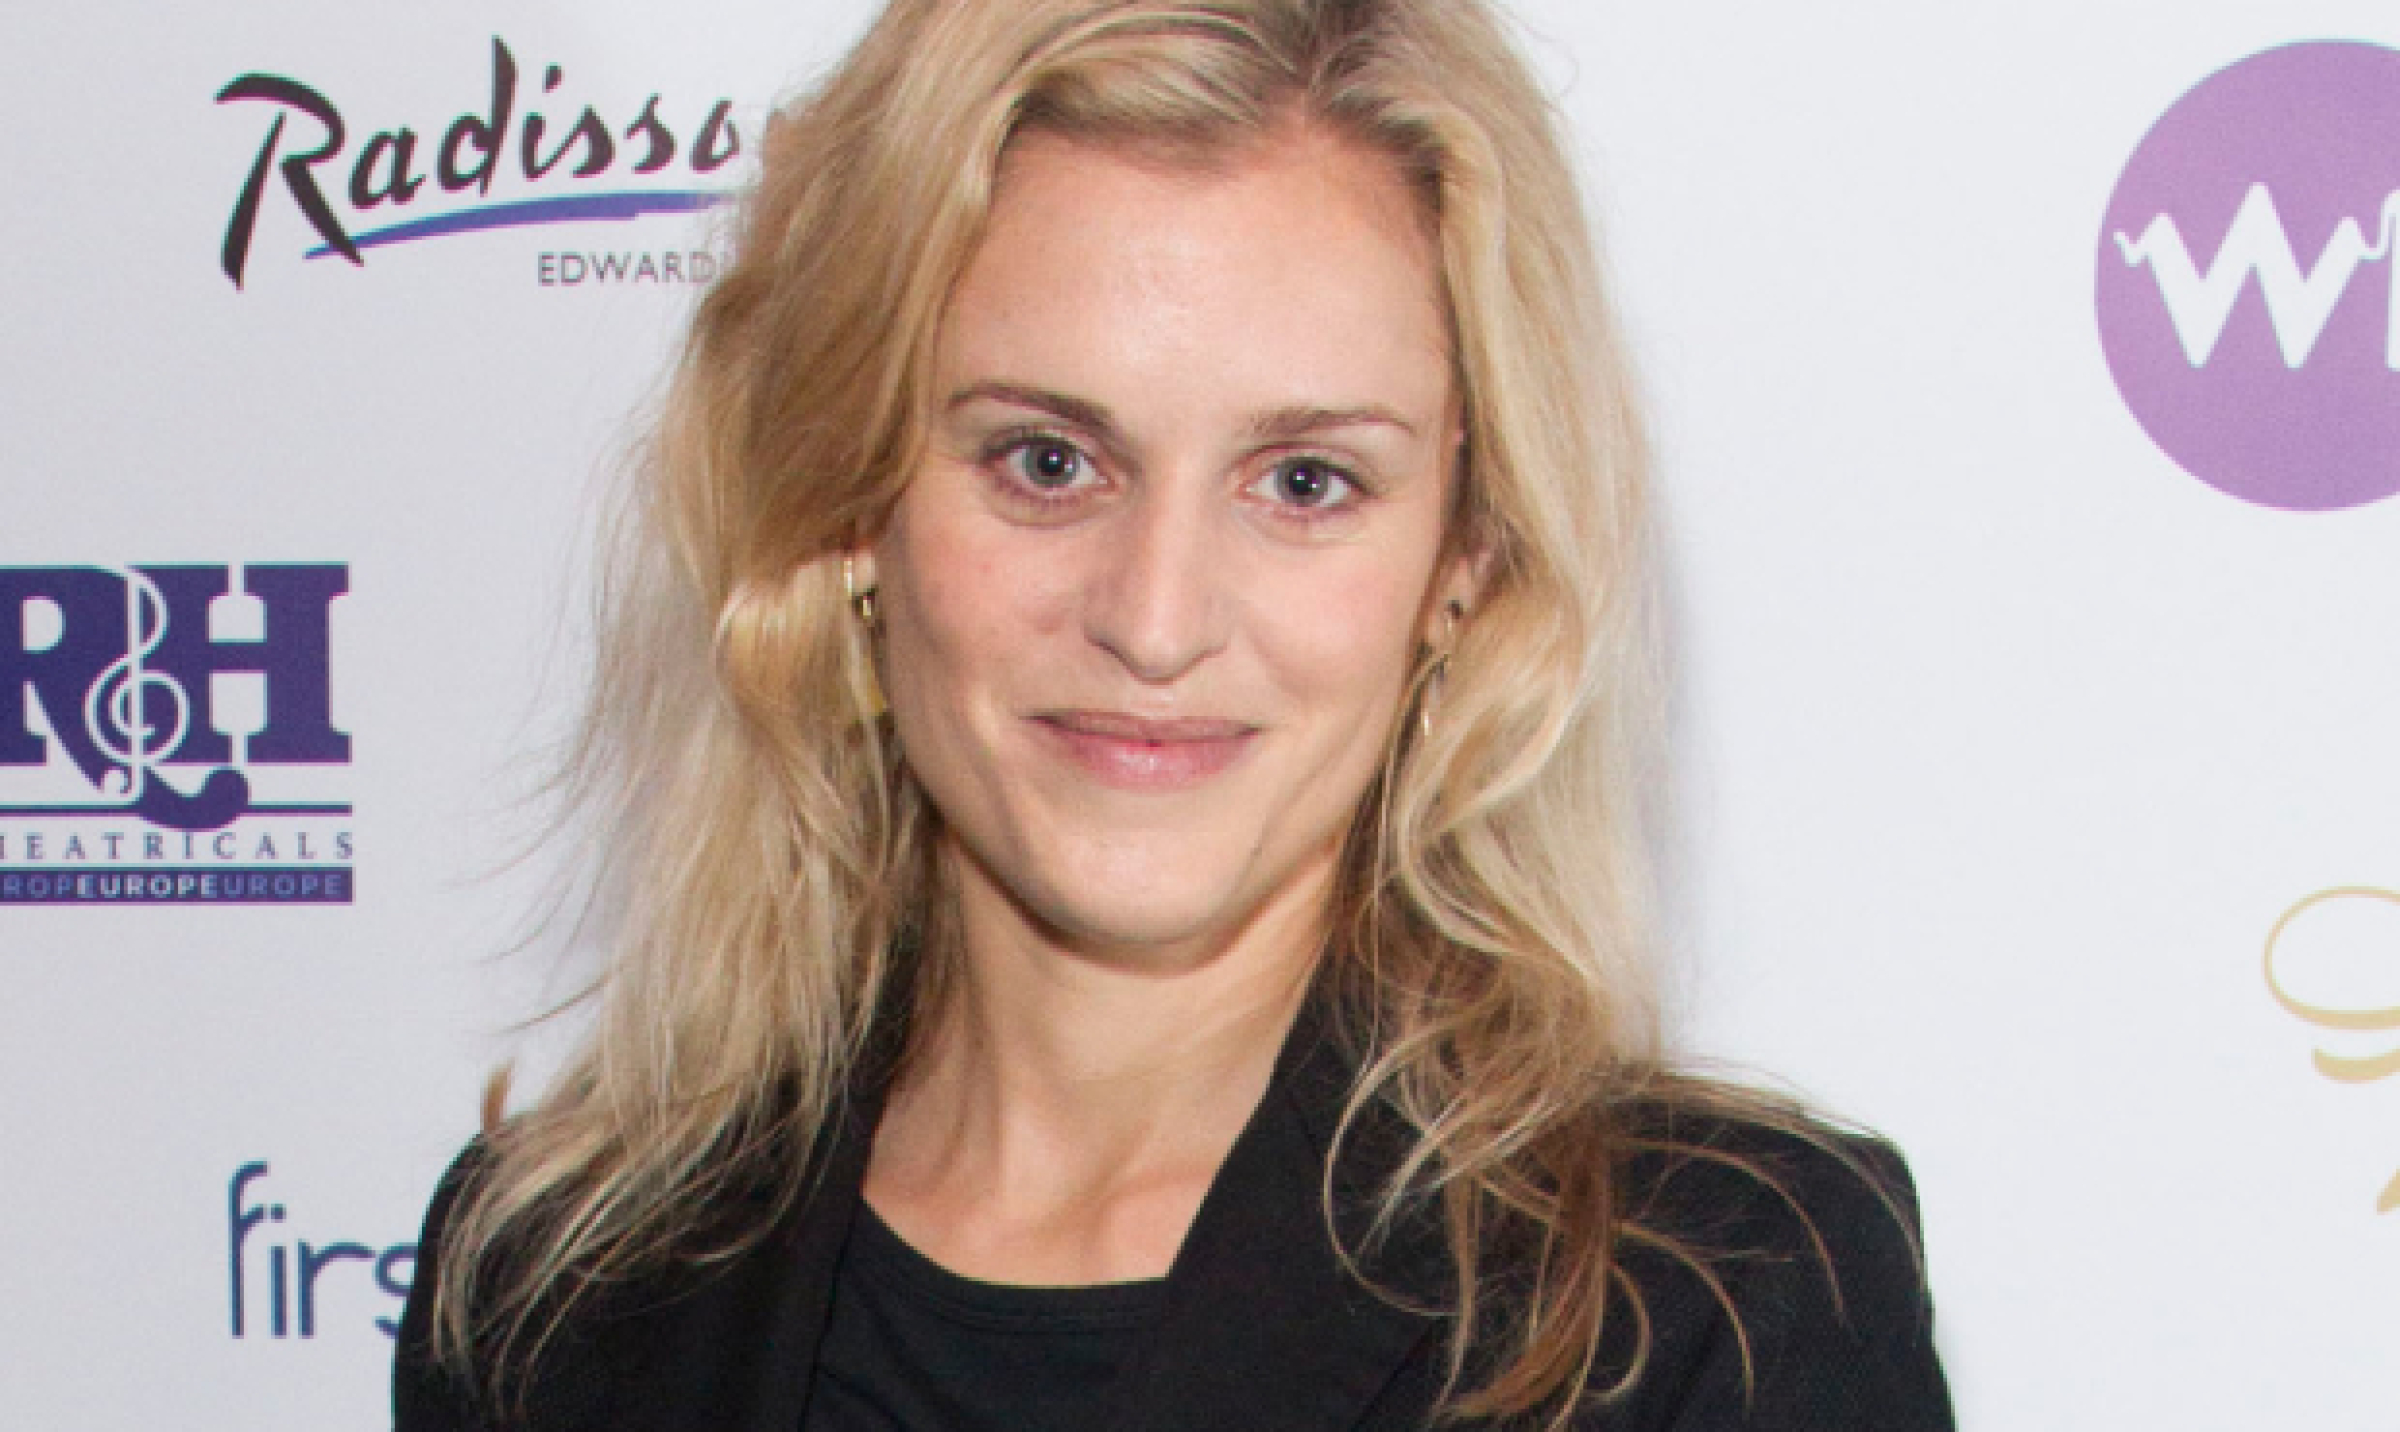 Photos Denise Gough nudes (51 foto and video), Pussy, Bikini, Twitter, braless 2020